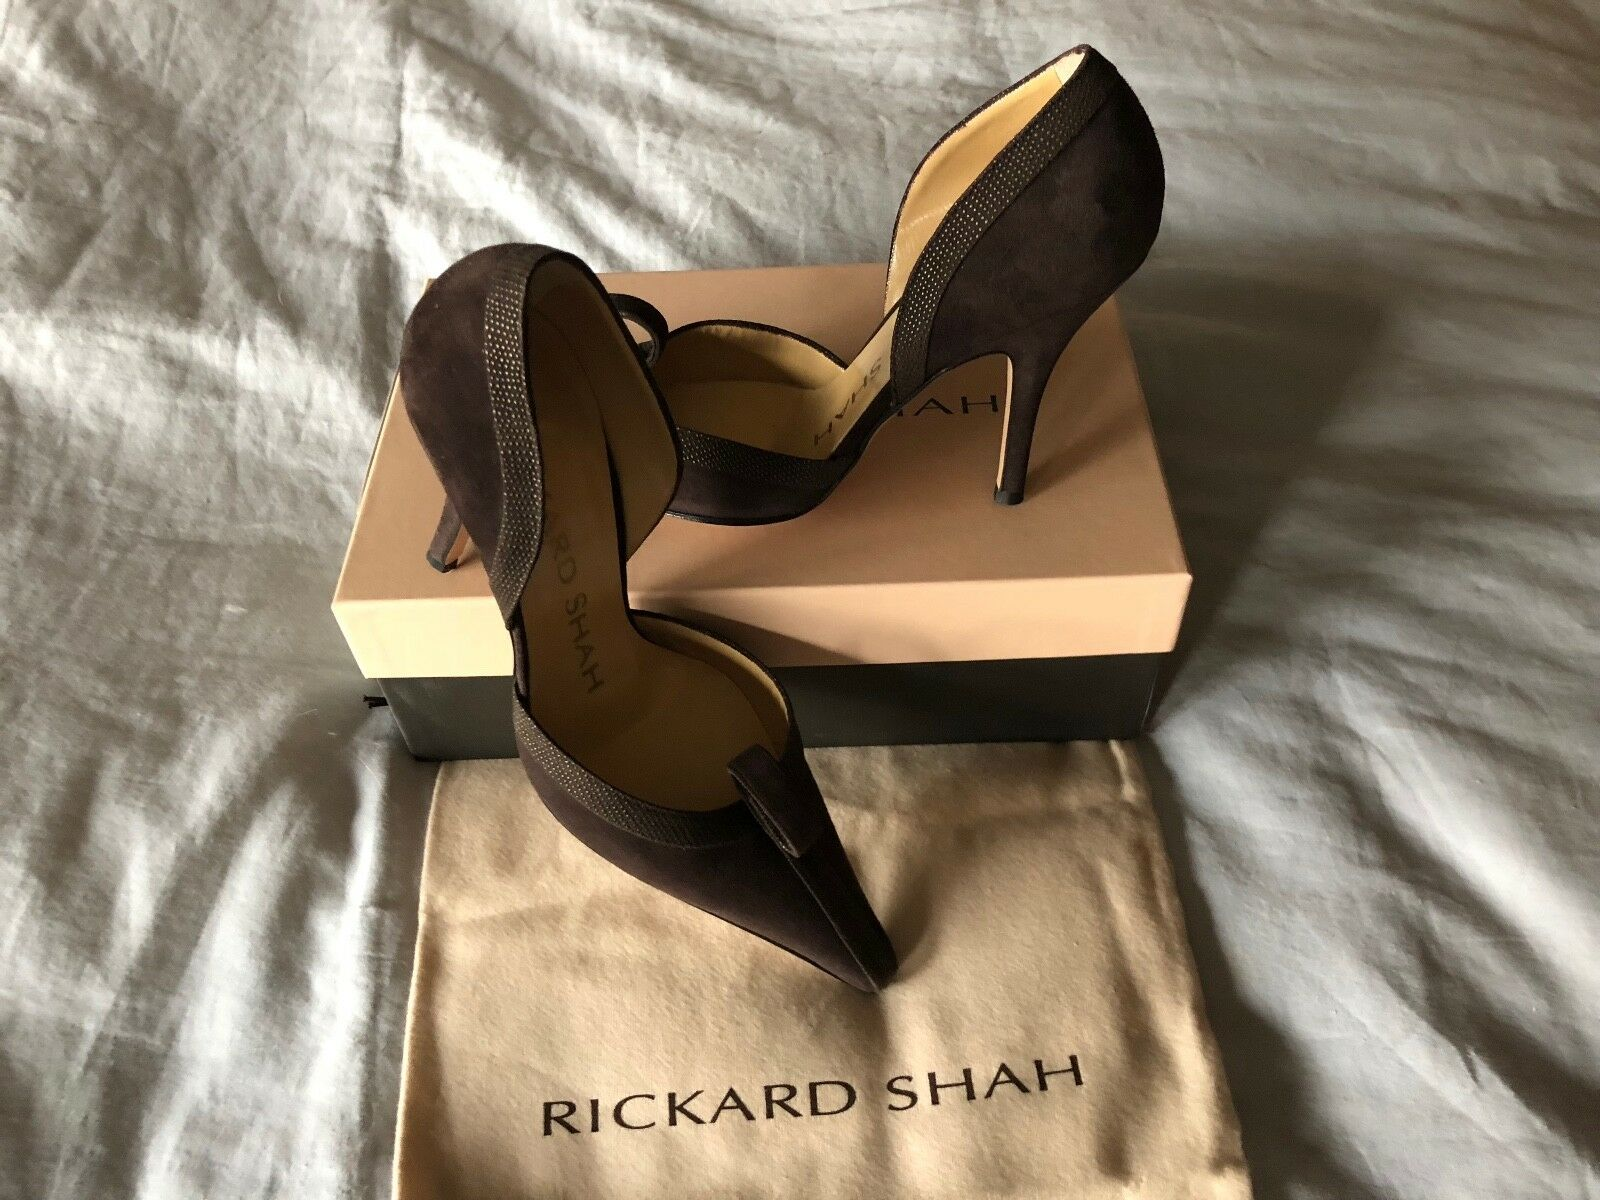 RICKARD SHAH Brown Suede Pointed-toe Slip-on Heels Decorative Loop Size 39